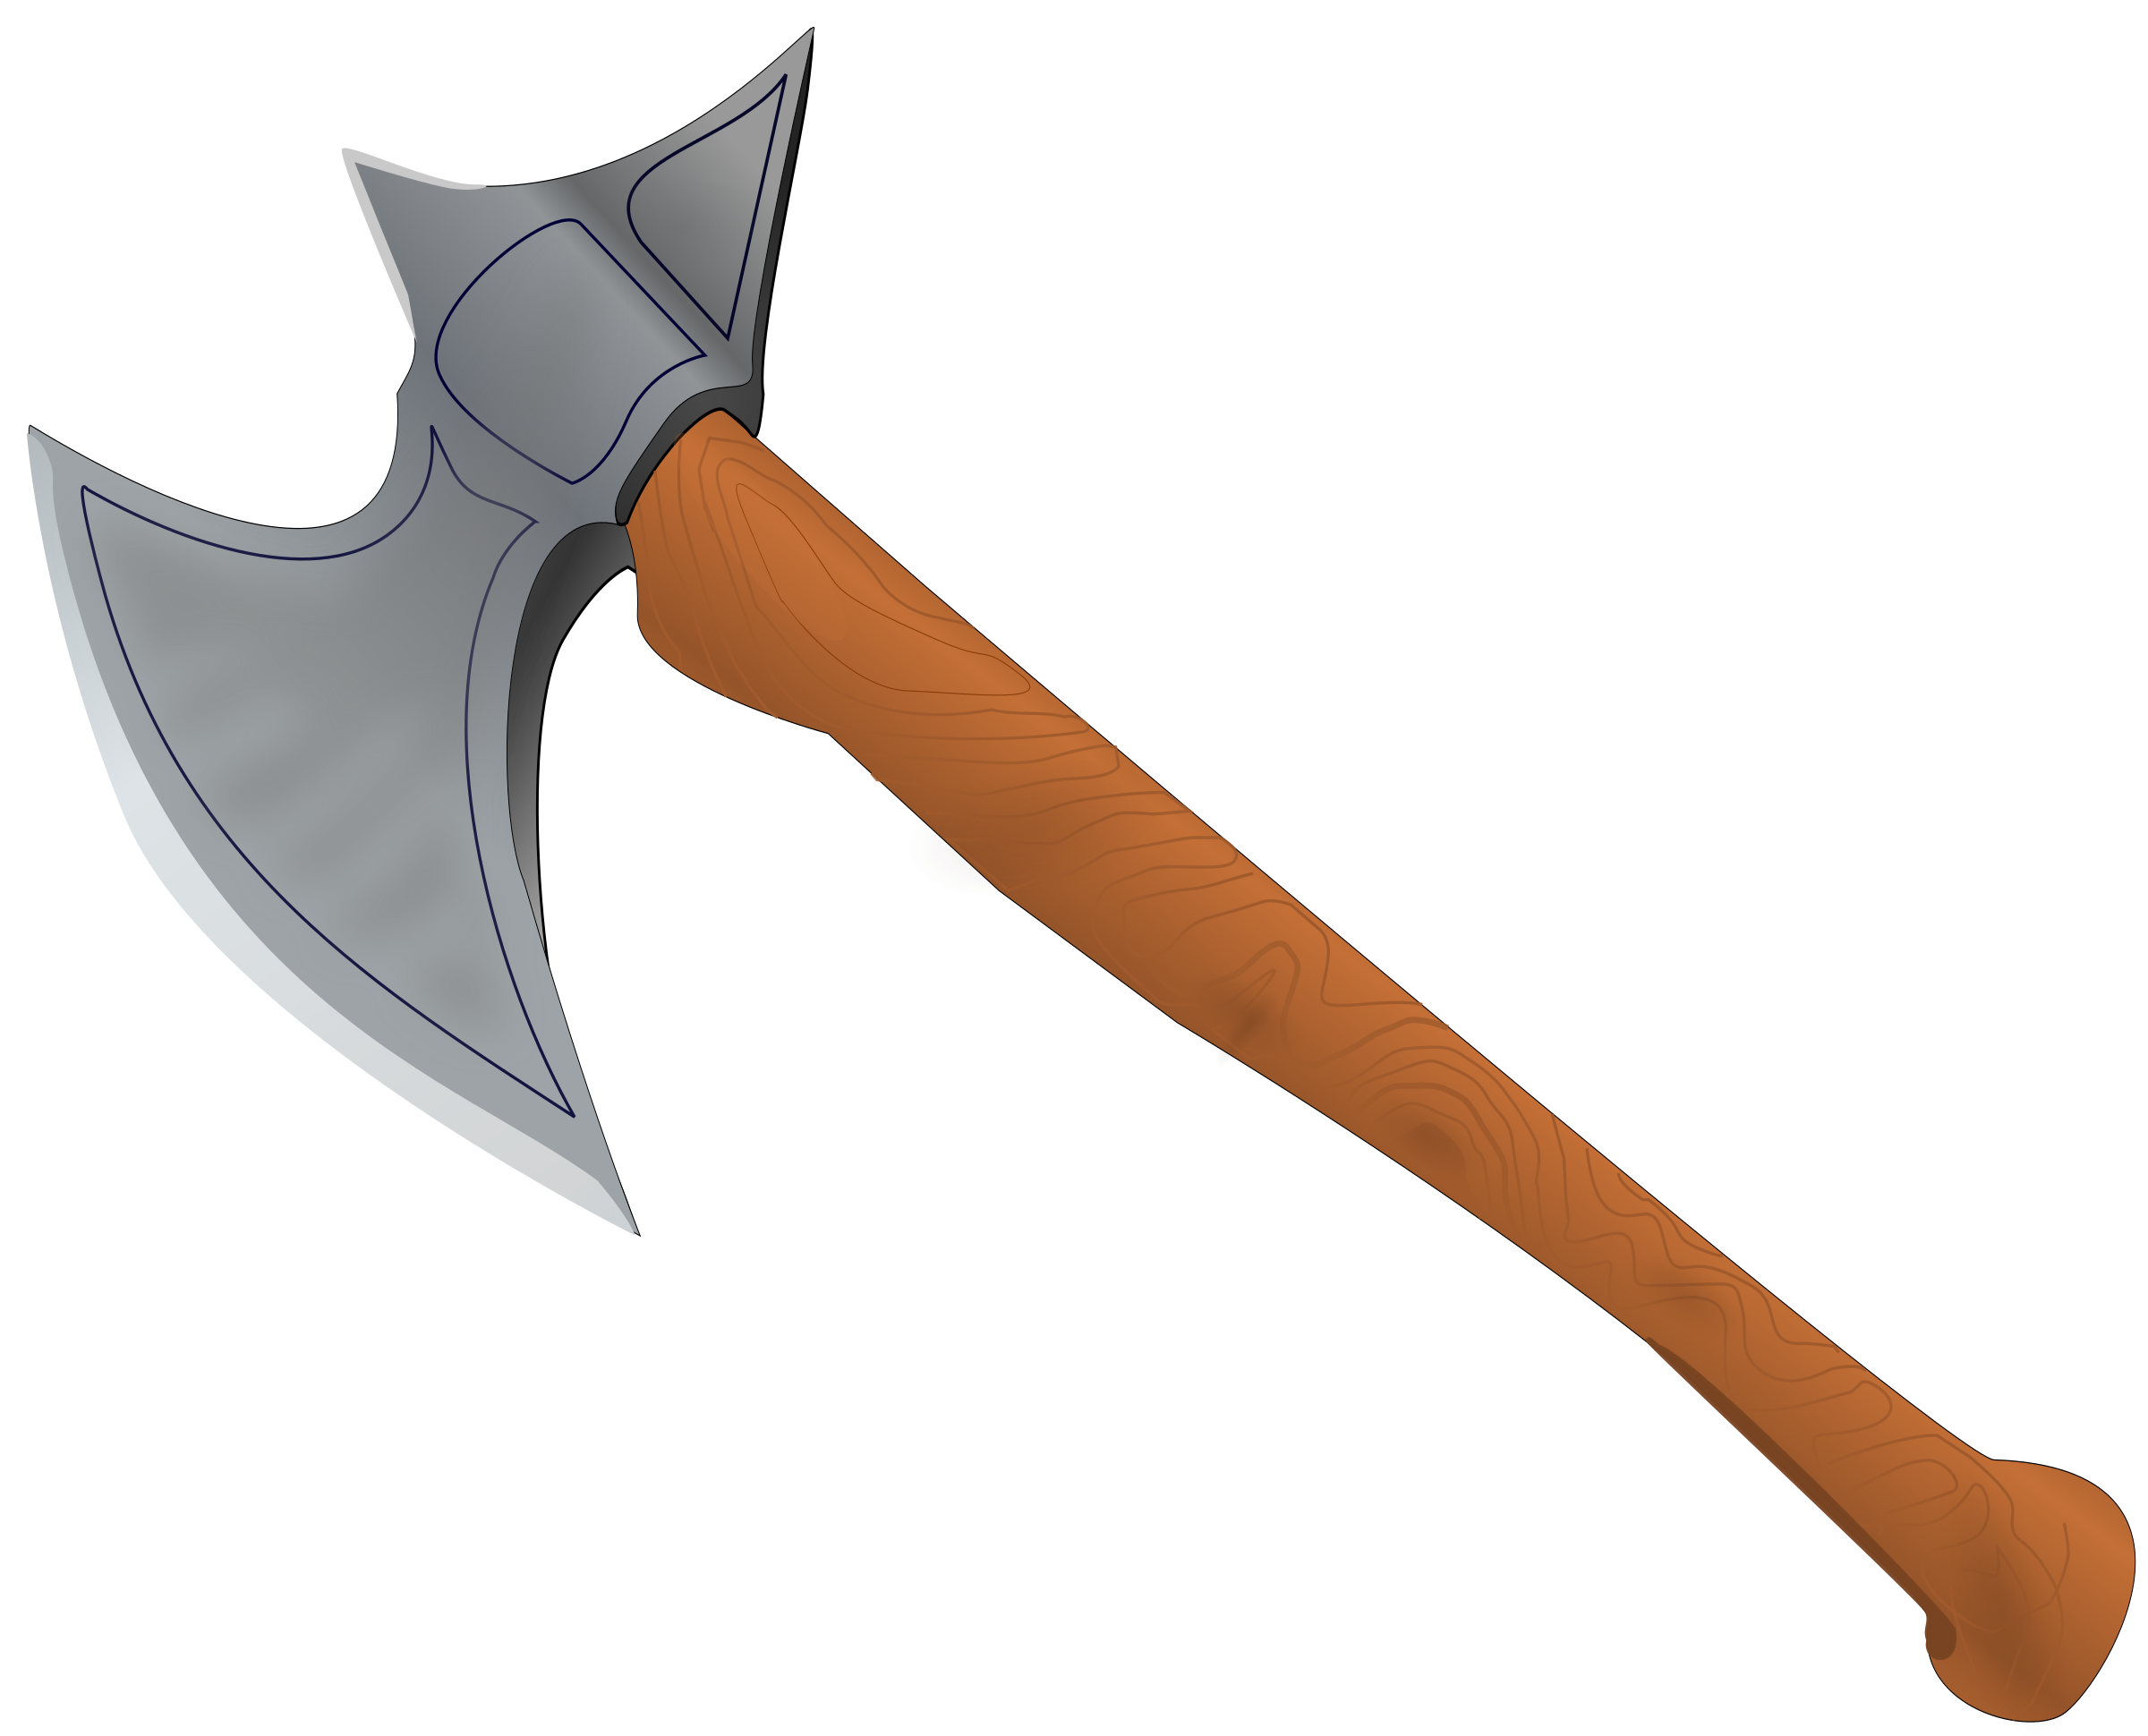 image free download Battle axe icons png. Wars clipart medieval army